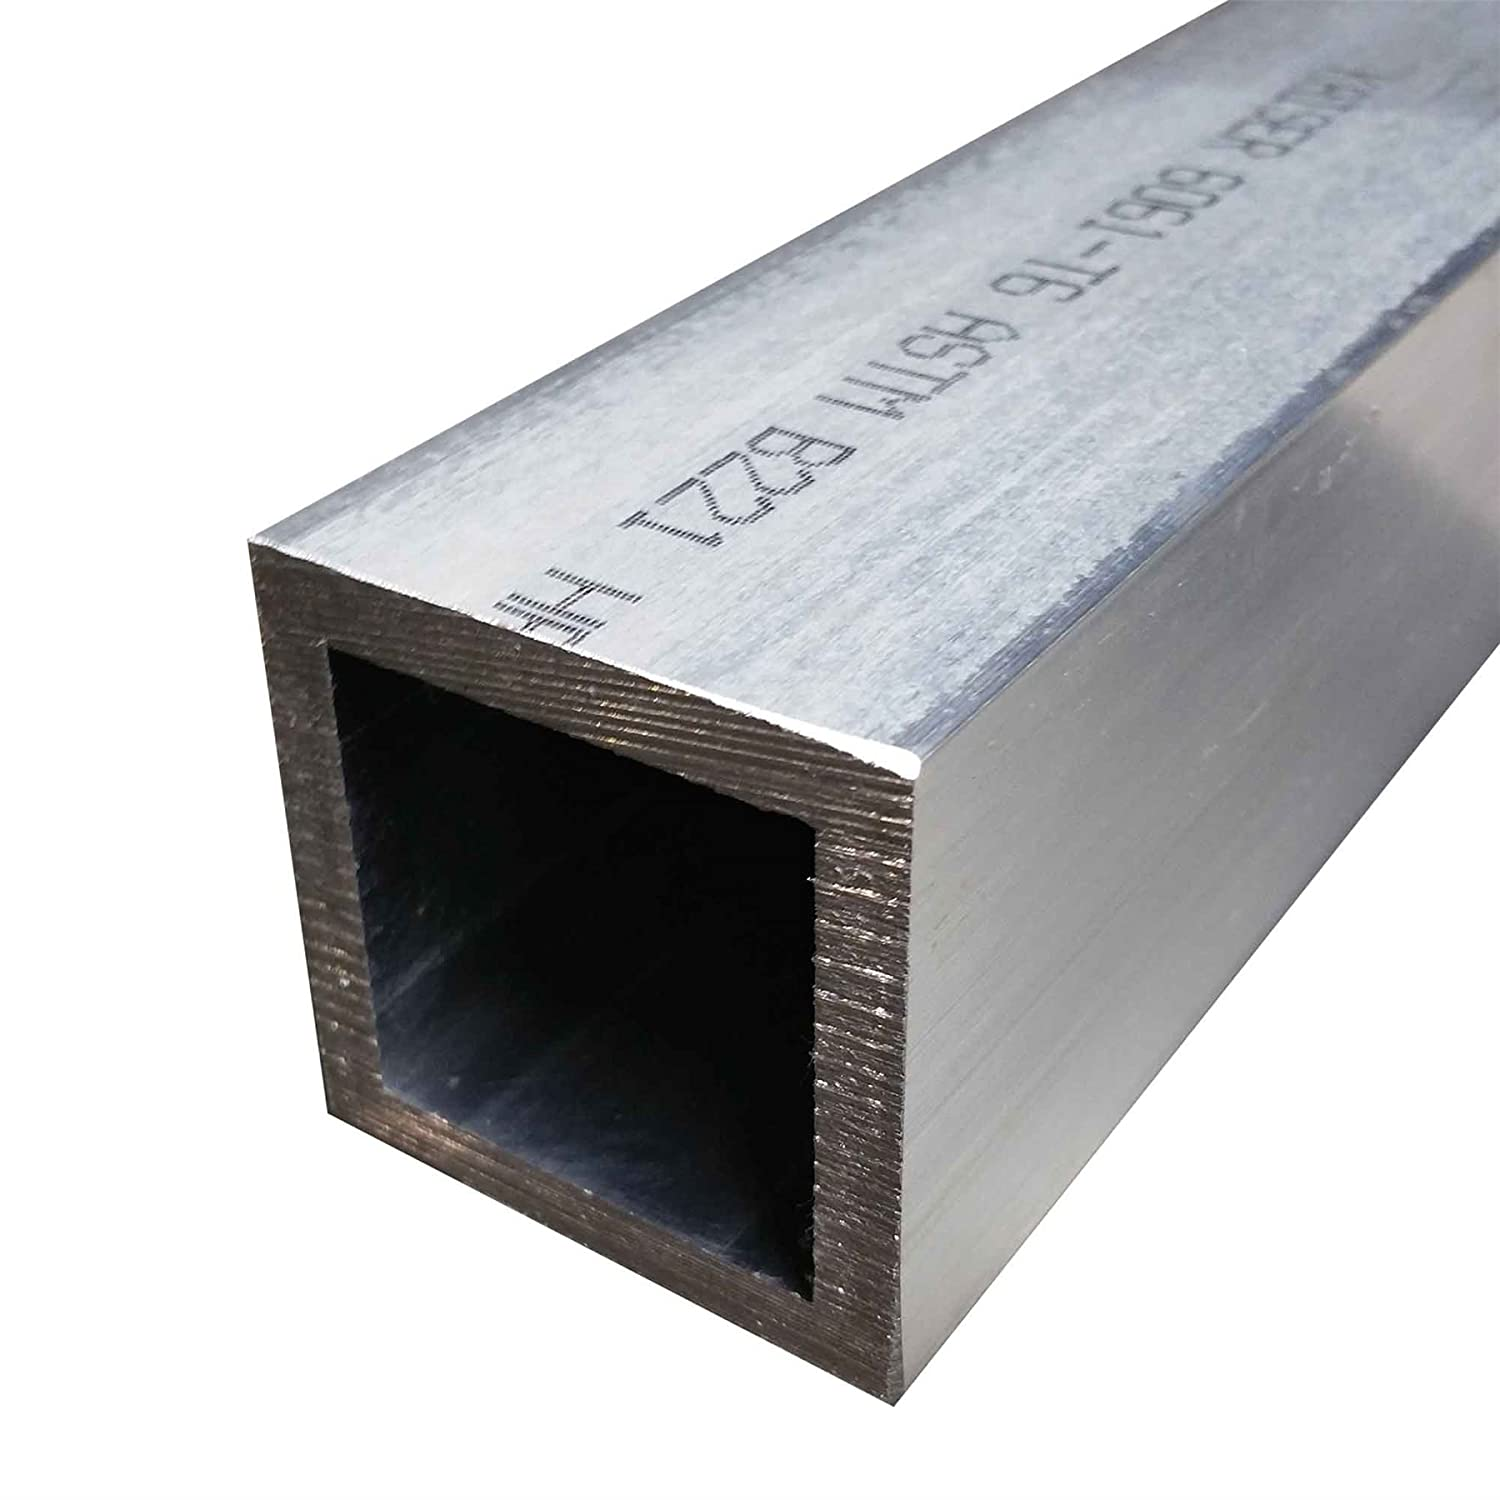 Online Metal Supply 6061-T6 Aluminum Square Tube 2 x 2 x 1//4 Wall x 84 long